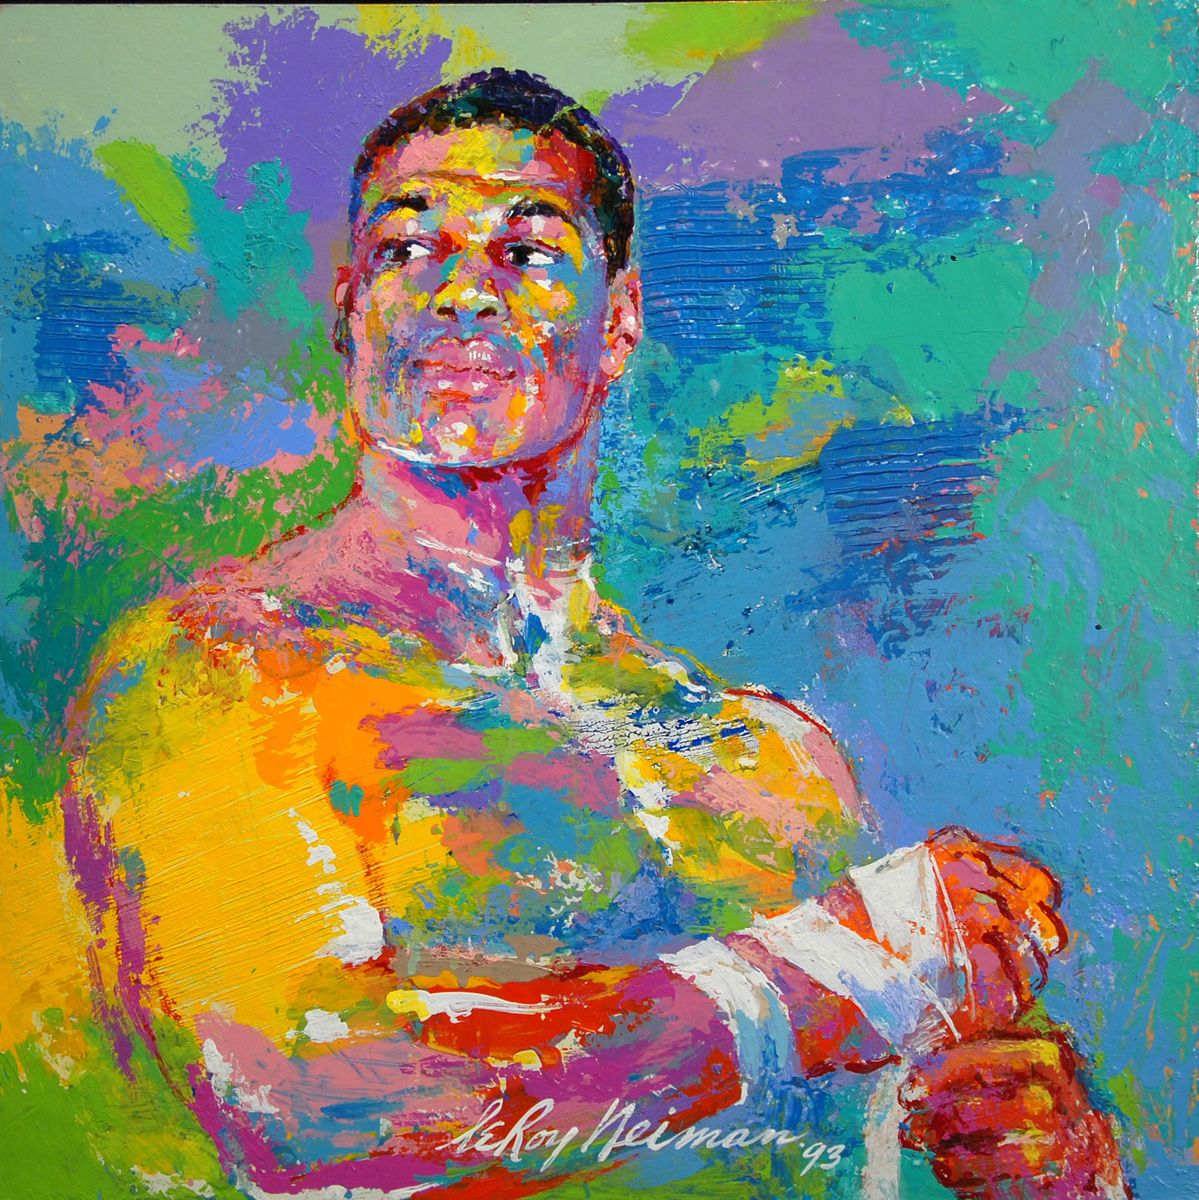 Riddick Bowe, acrylic & enamel on board, 19 x 18.75 in. 1993